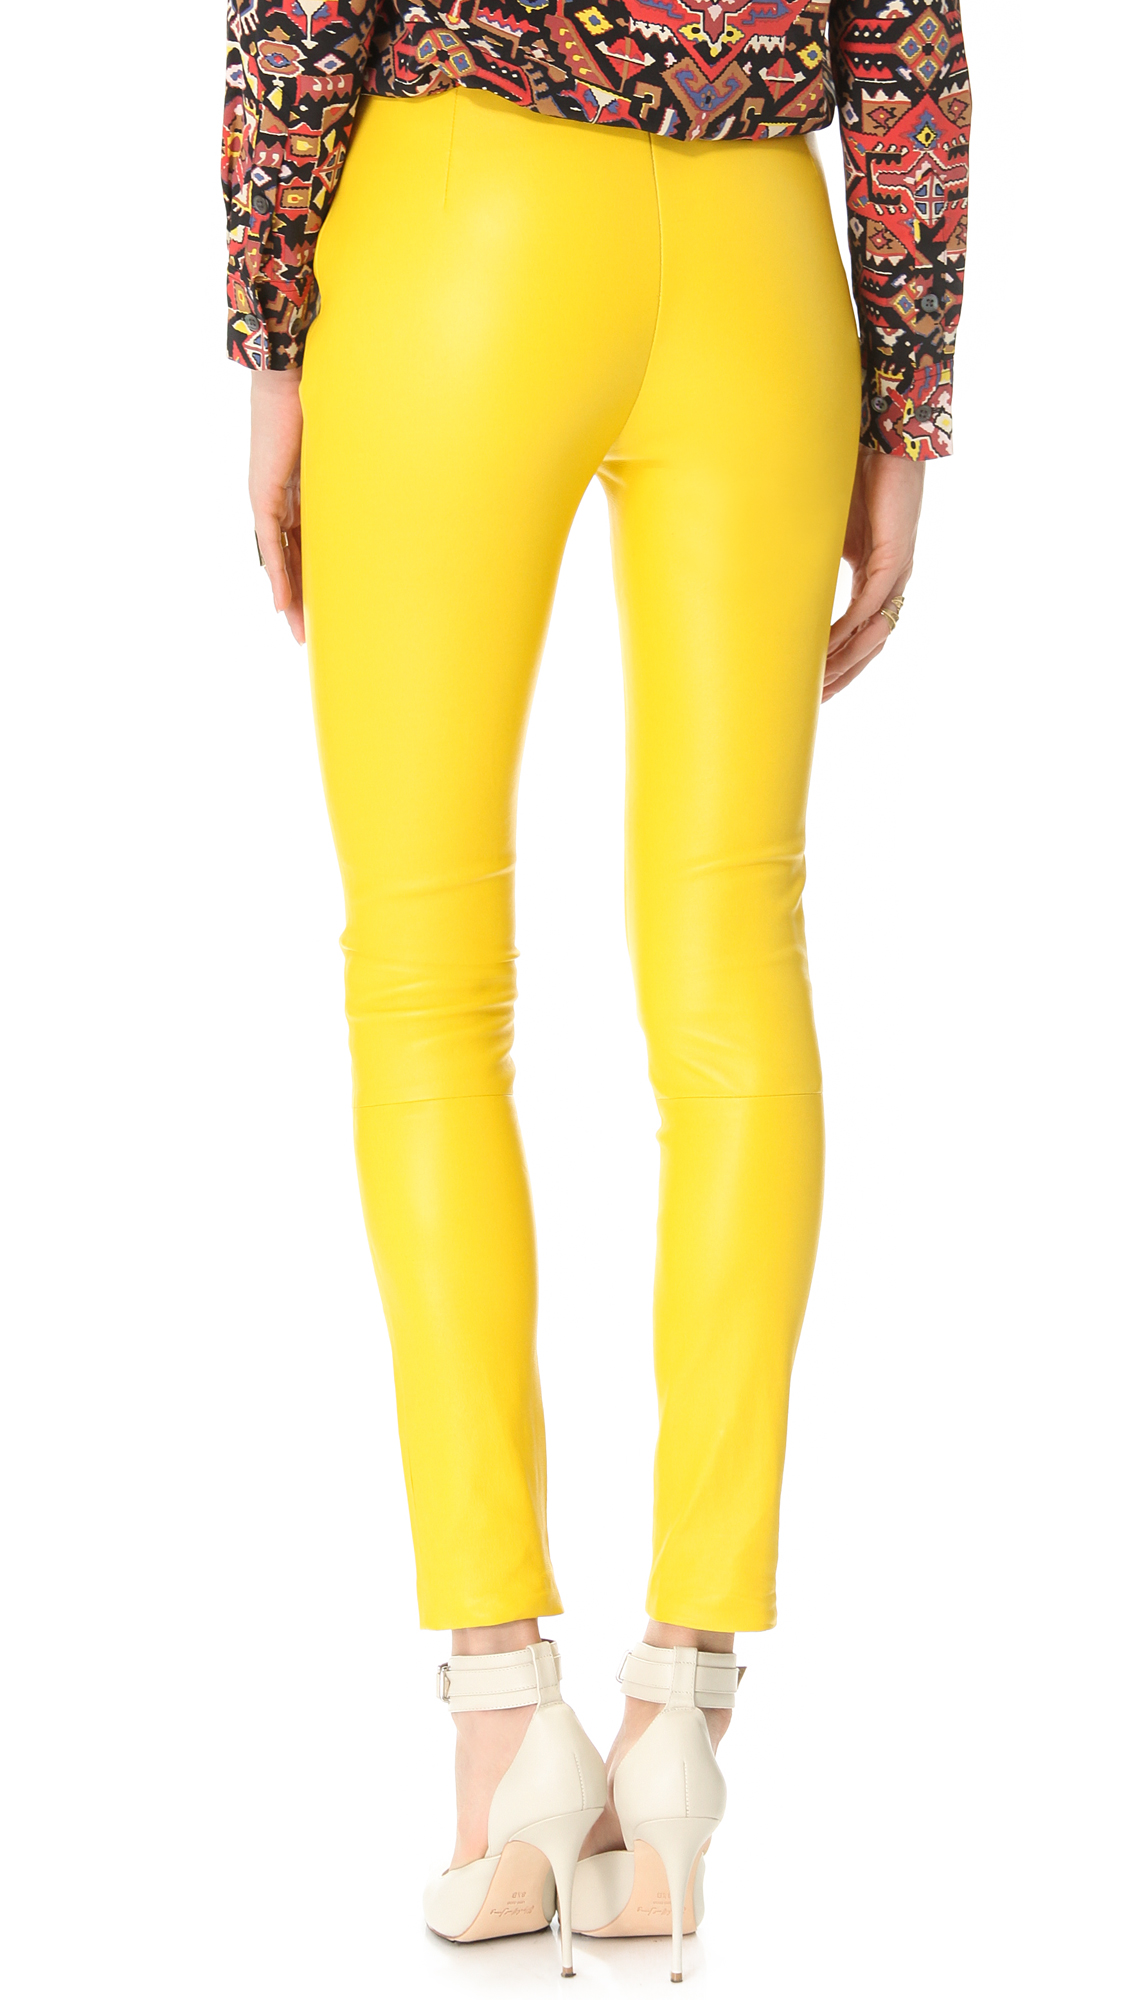 Beautiful Tripp NYCThe Skinny Twill Pant In Yellow Pants For Women  Polyvore